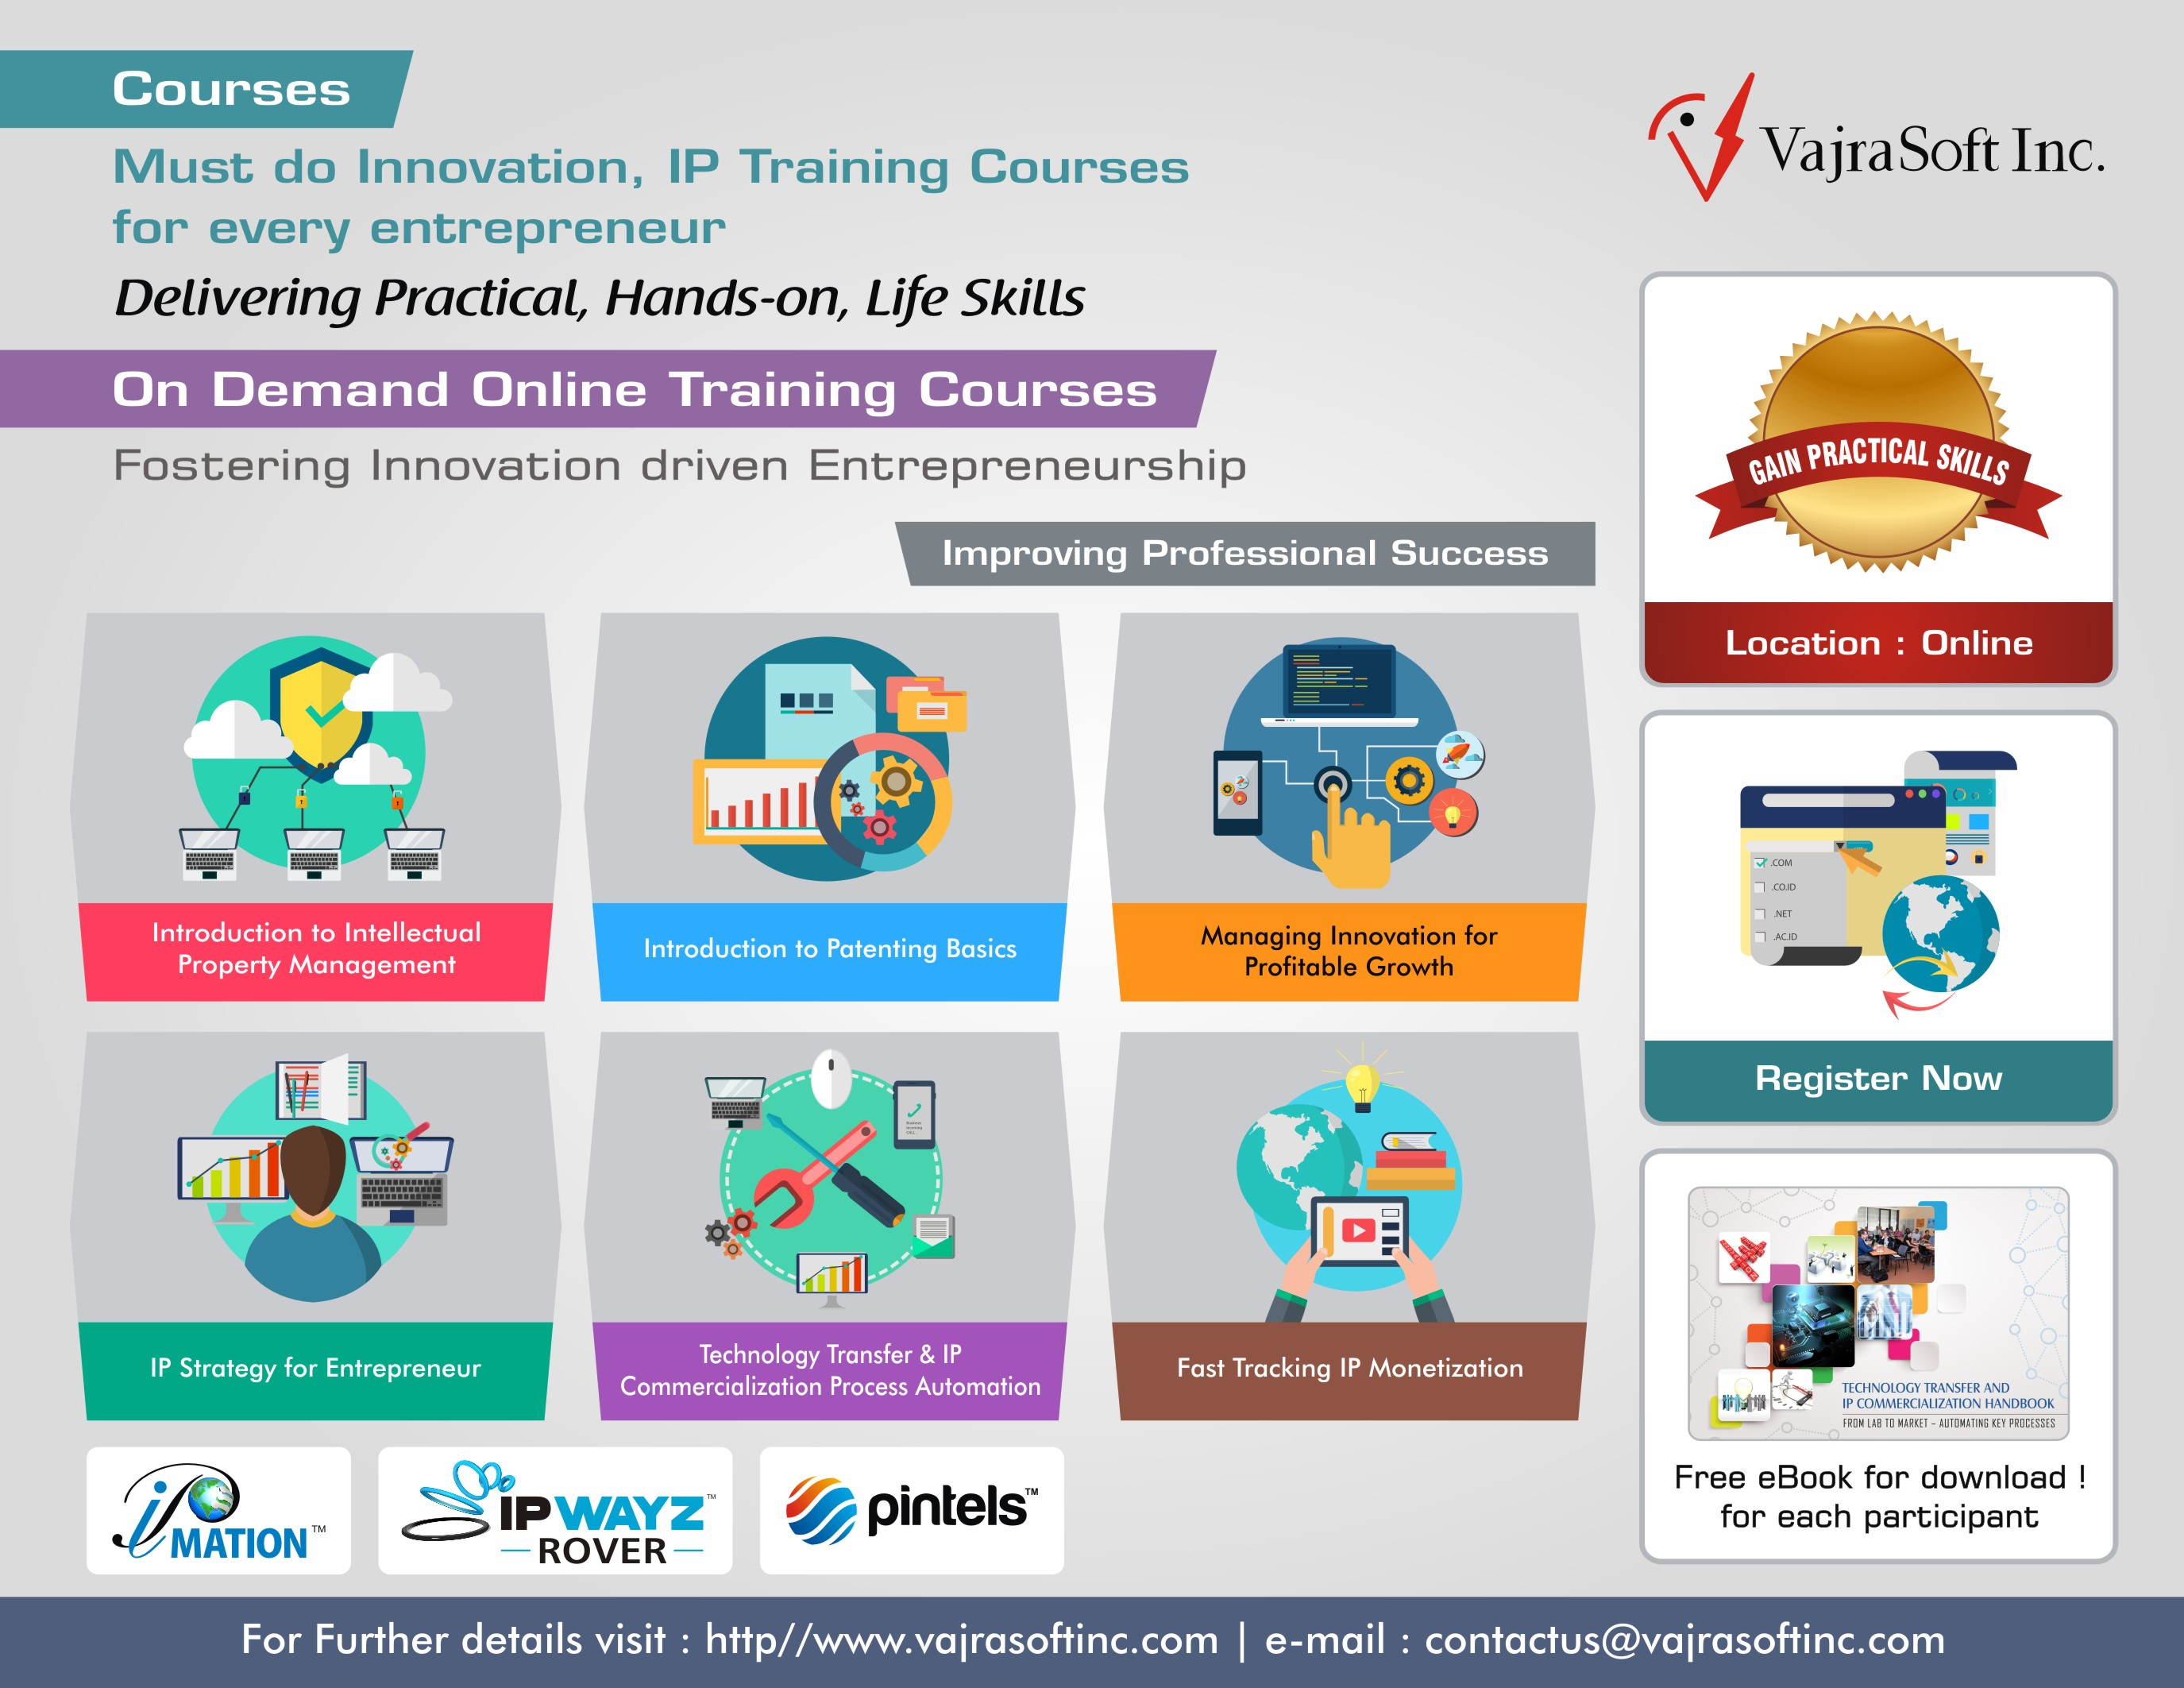 6 Must Do Training Courses